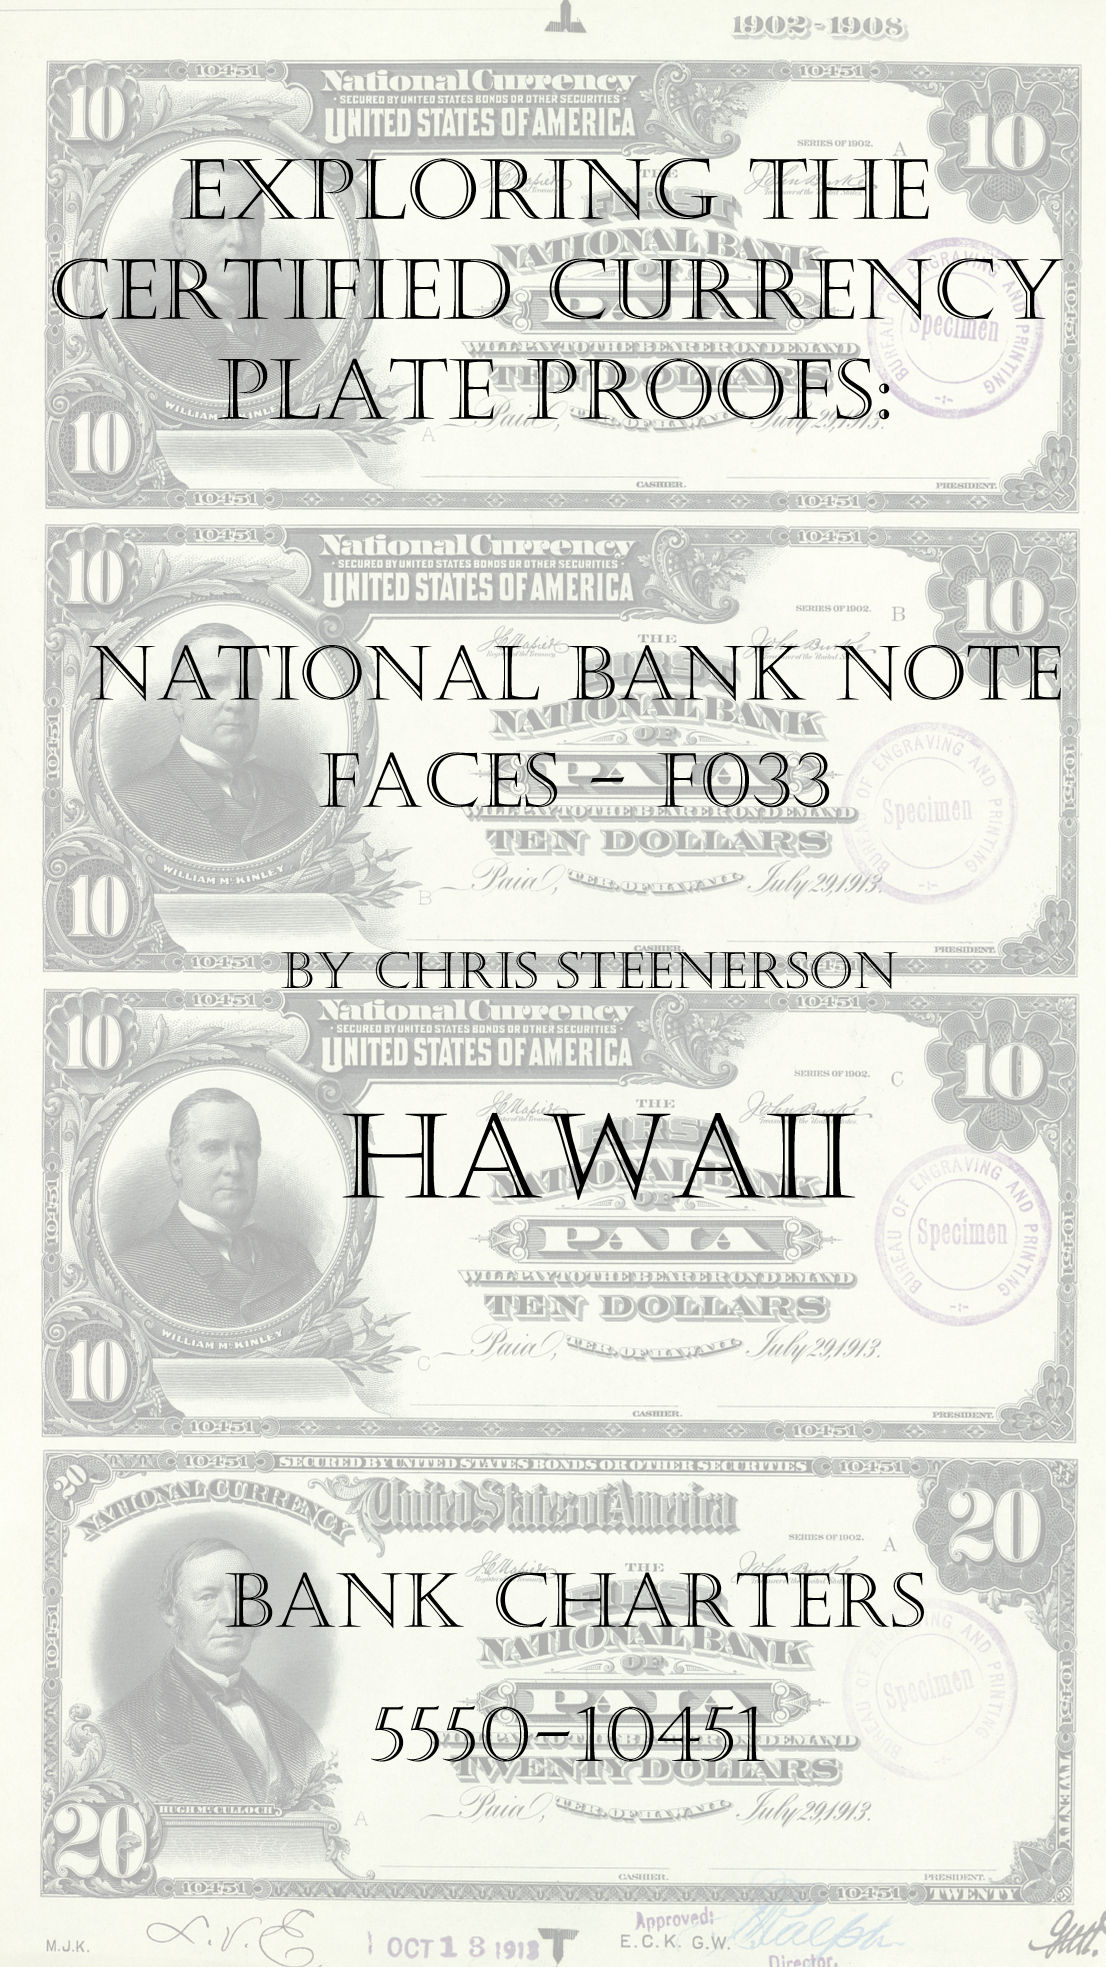 Hawaii National Bank Note Currency Proofs